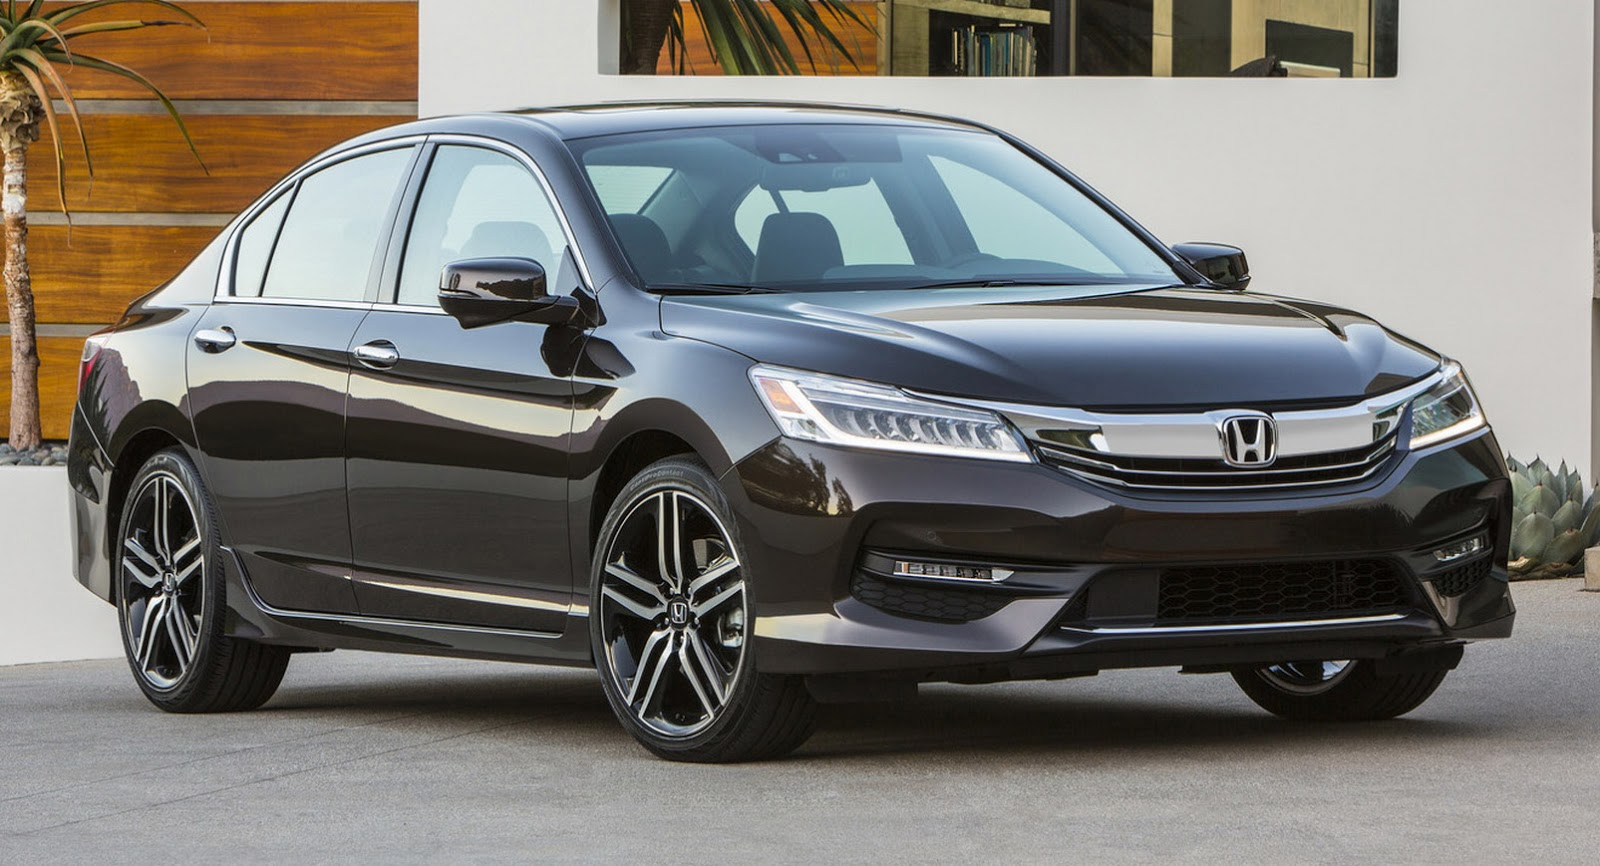 The Motoring World: USA SALES FEBRUARY - Honda grows and Acura ...